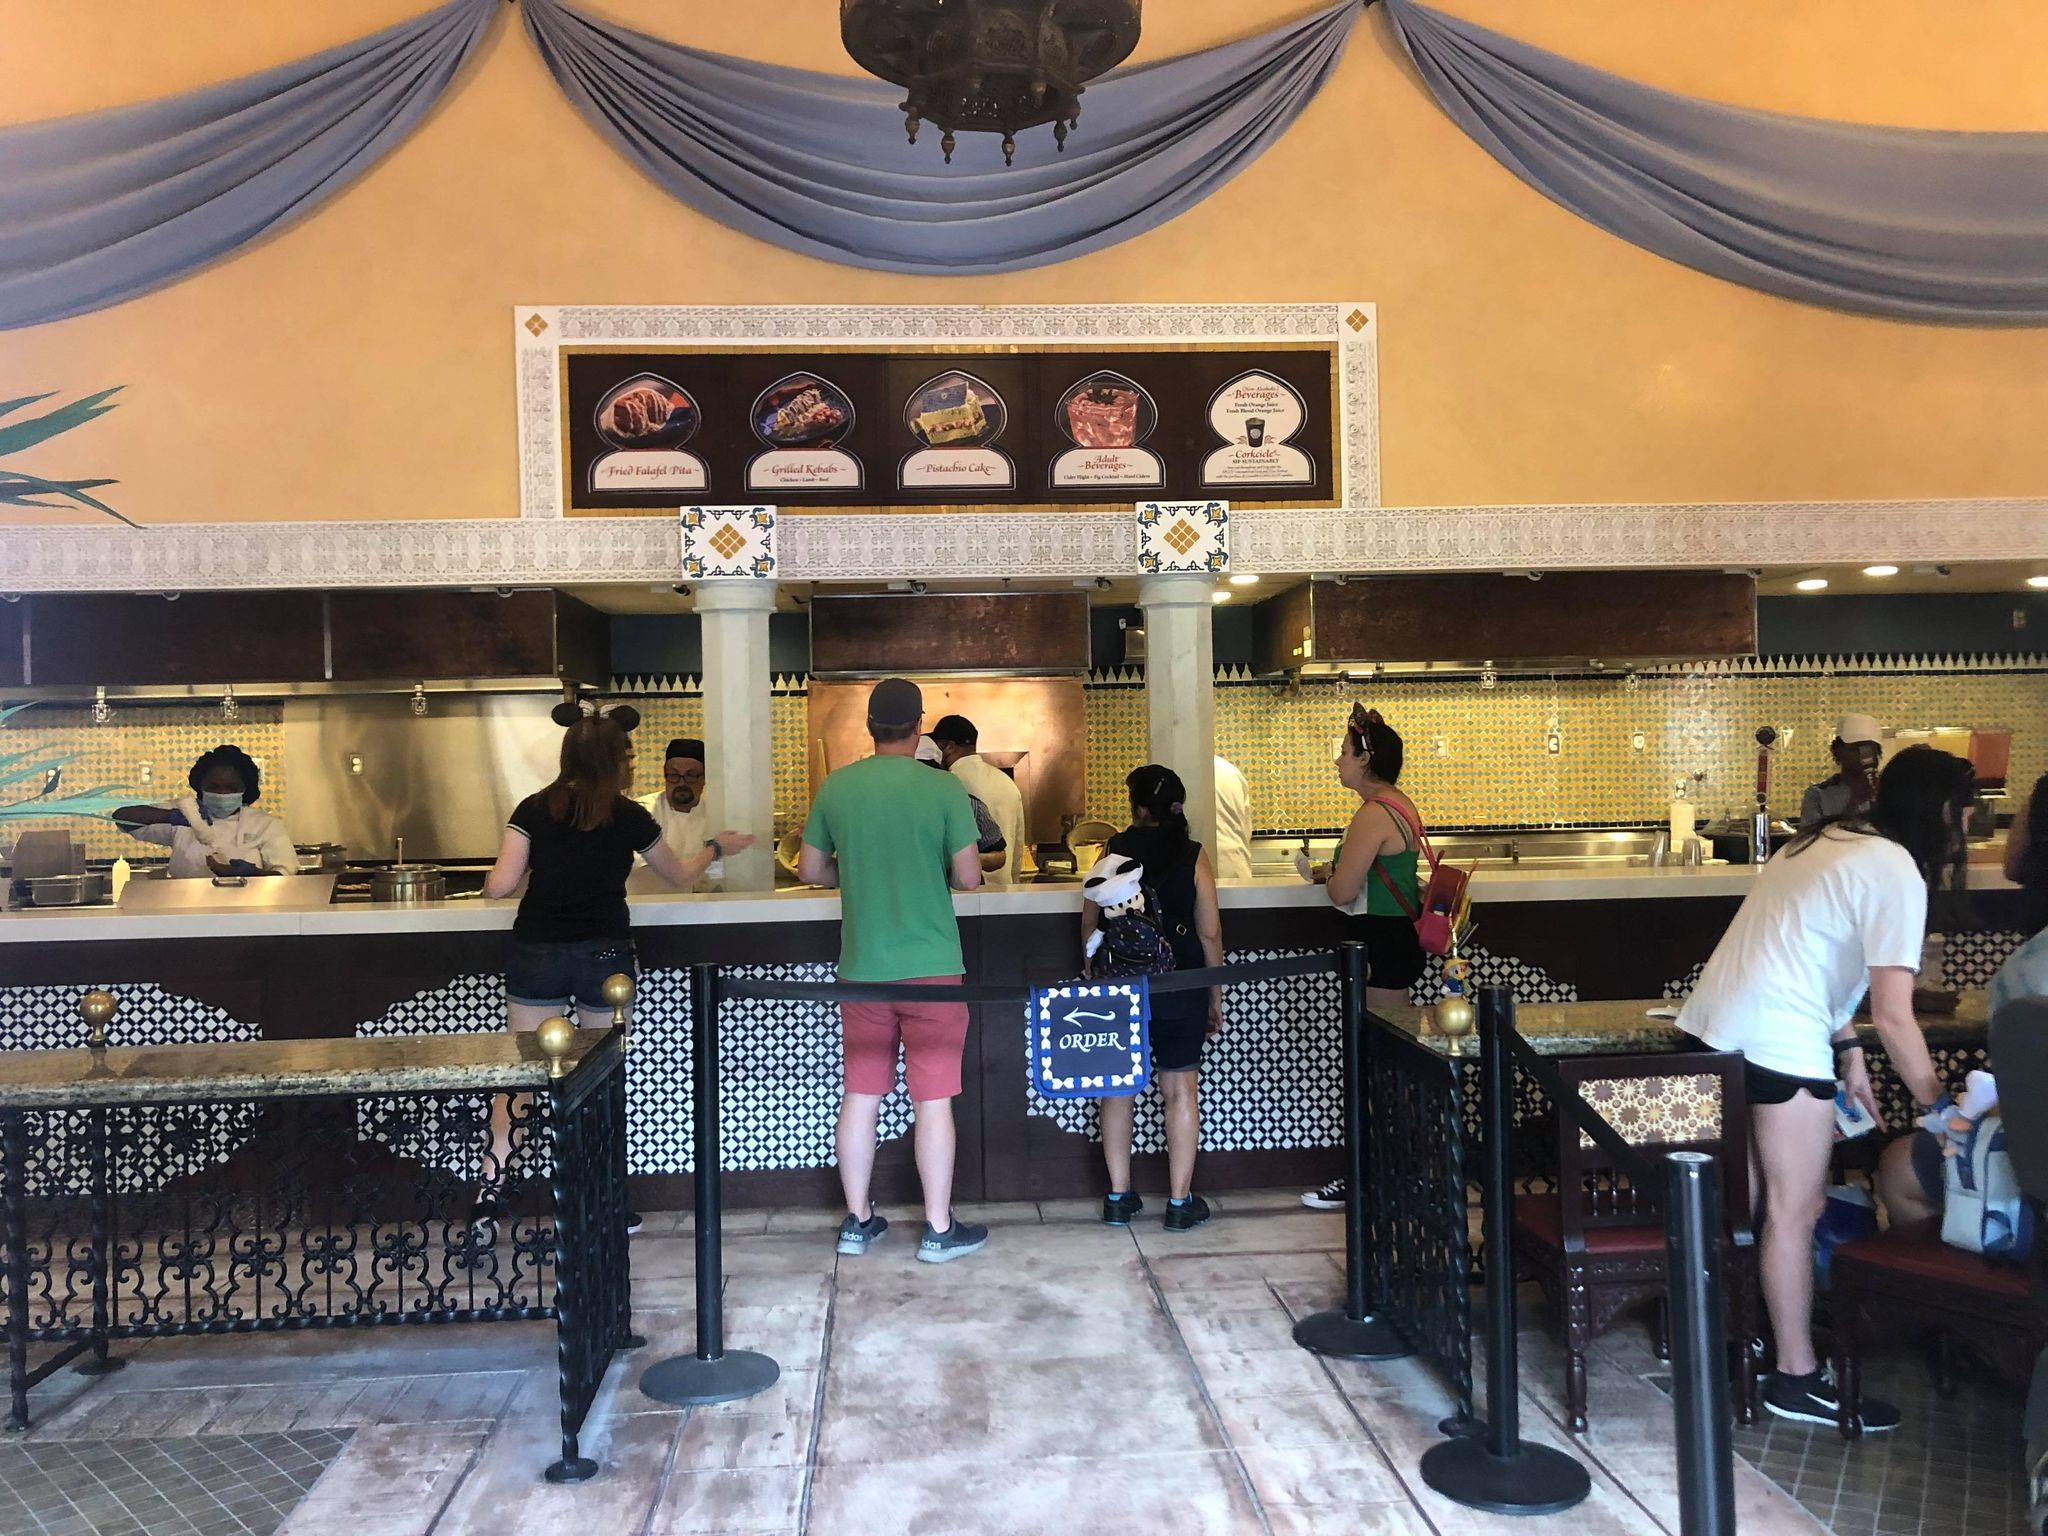 Tangierine Café: Flavors of the Medina Opens for Epcot Food & Wine Festival 7